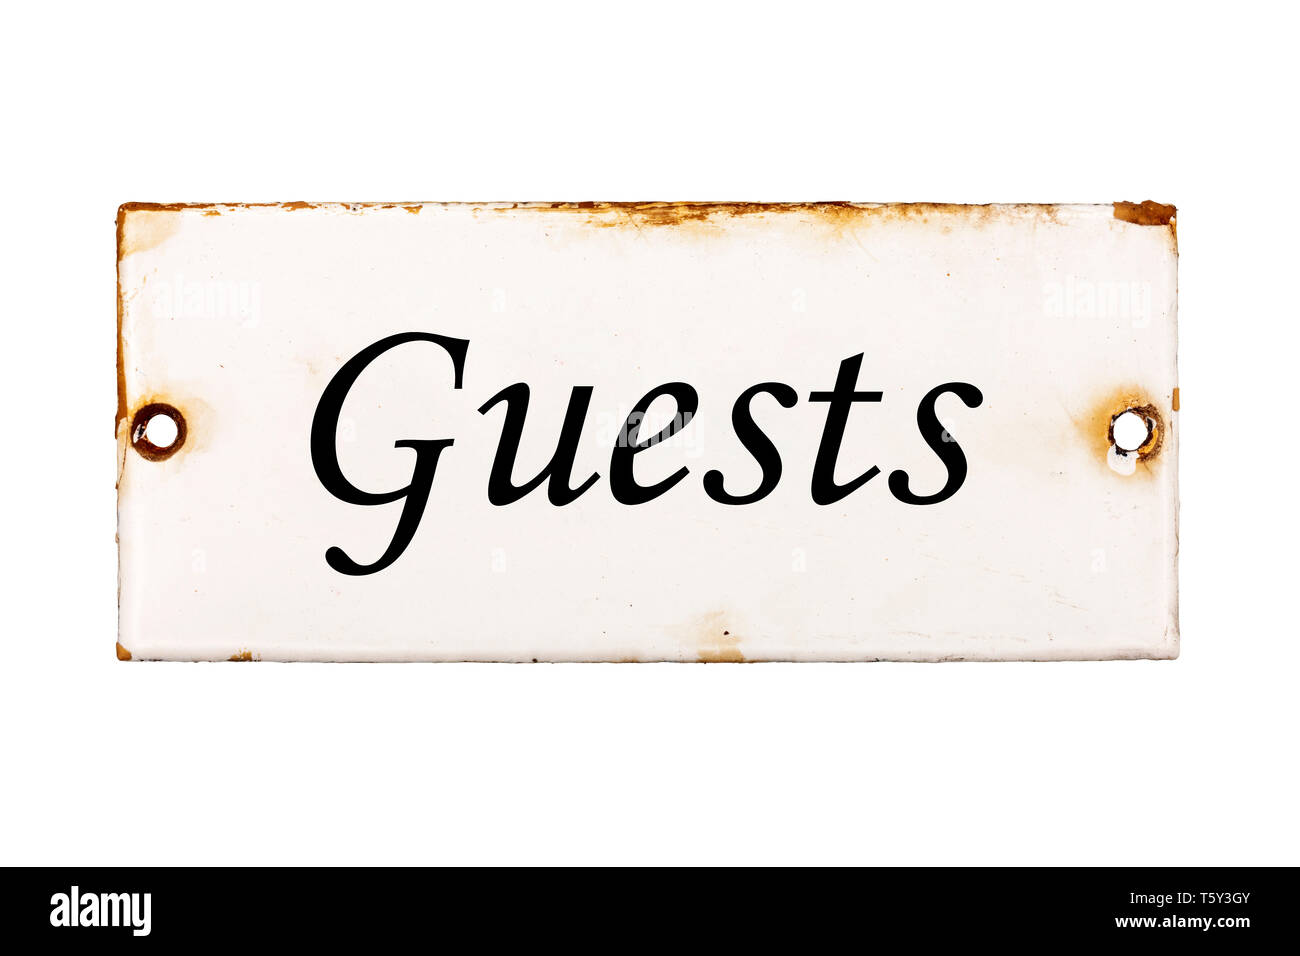 Guests, old and rusty enameled door plate, isolated on white background - Stock Image